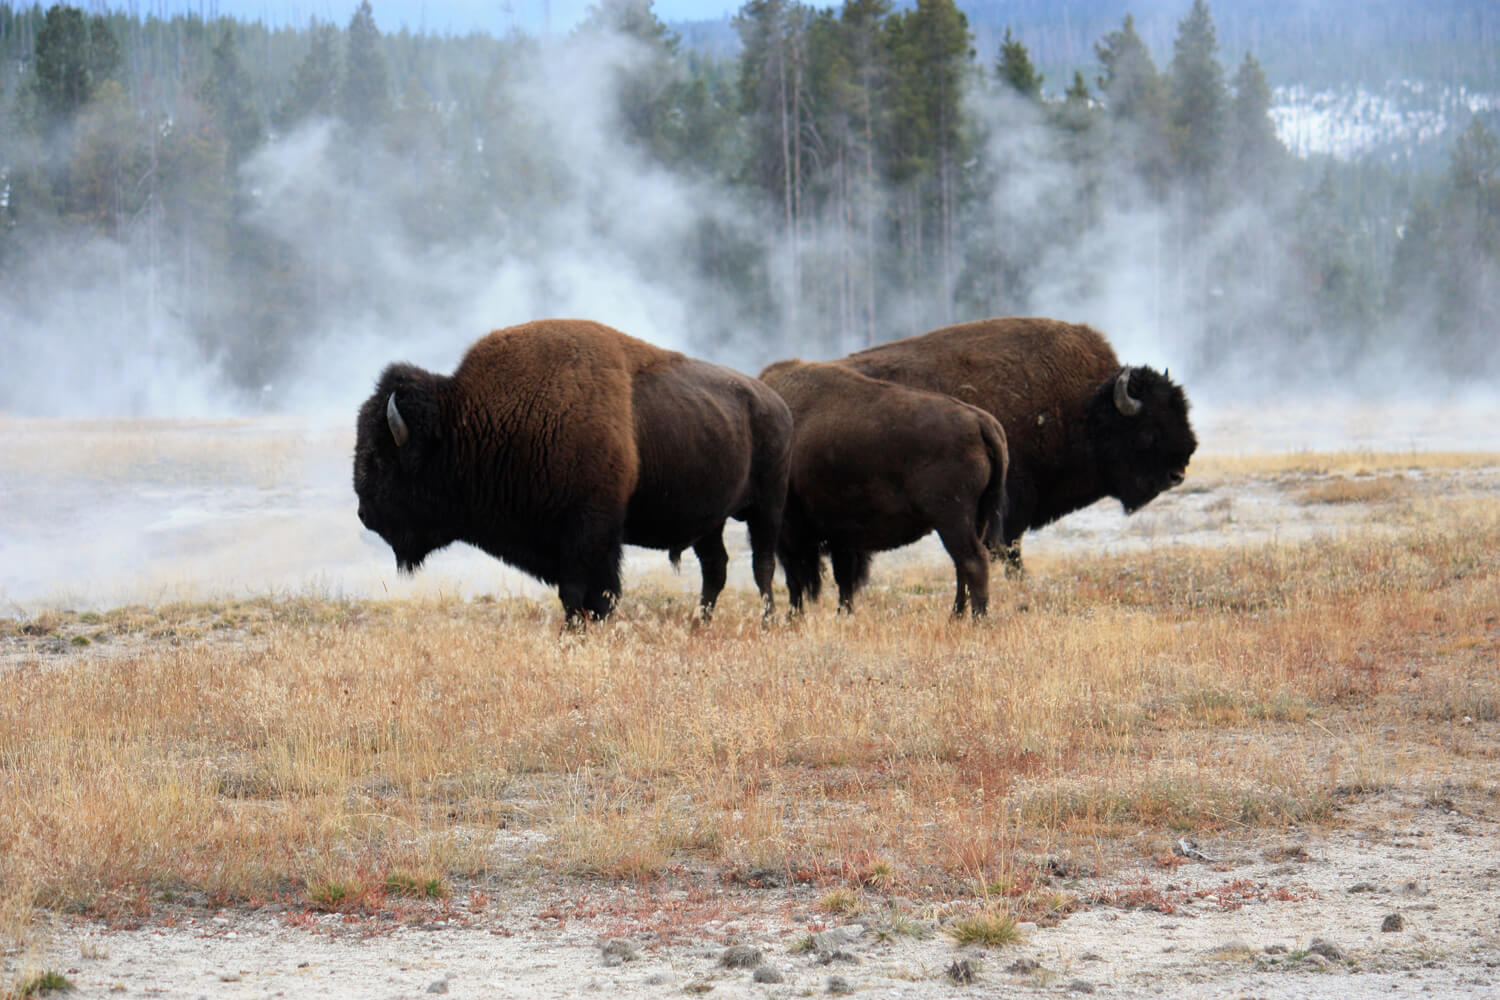 Bison roam freely throughout the park.